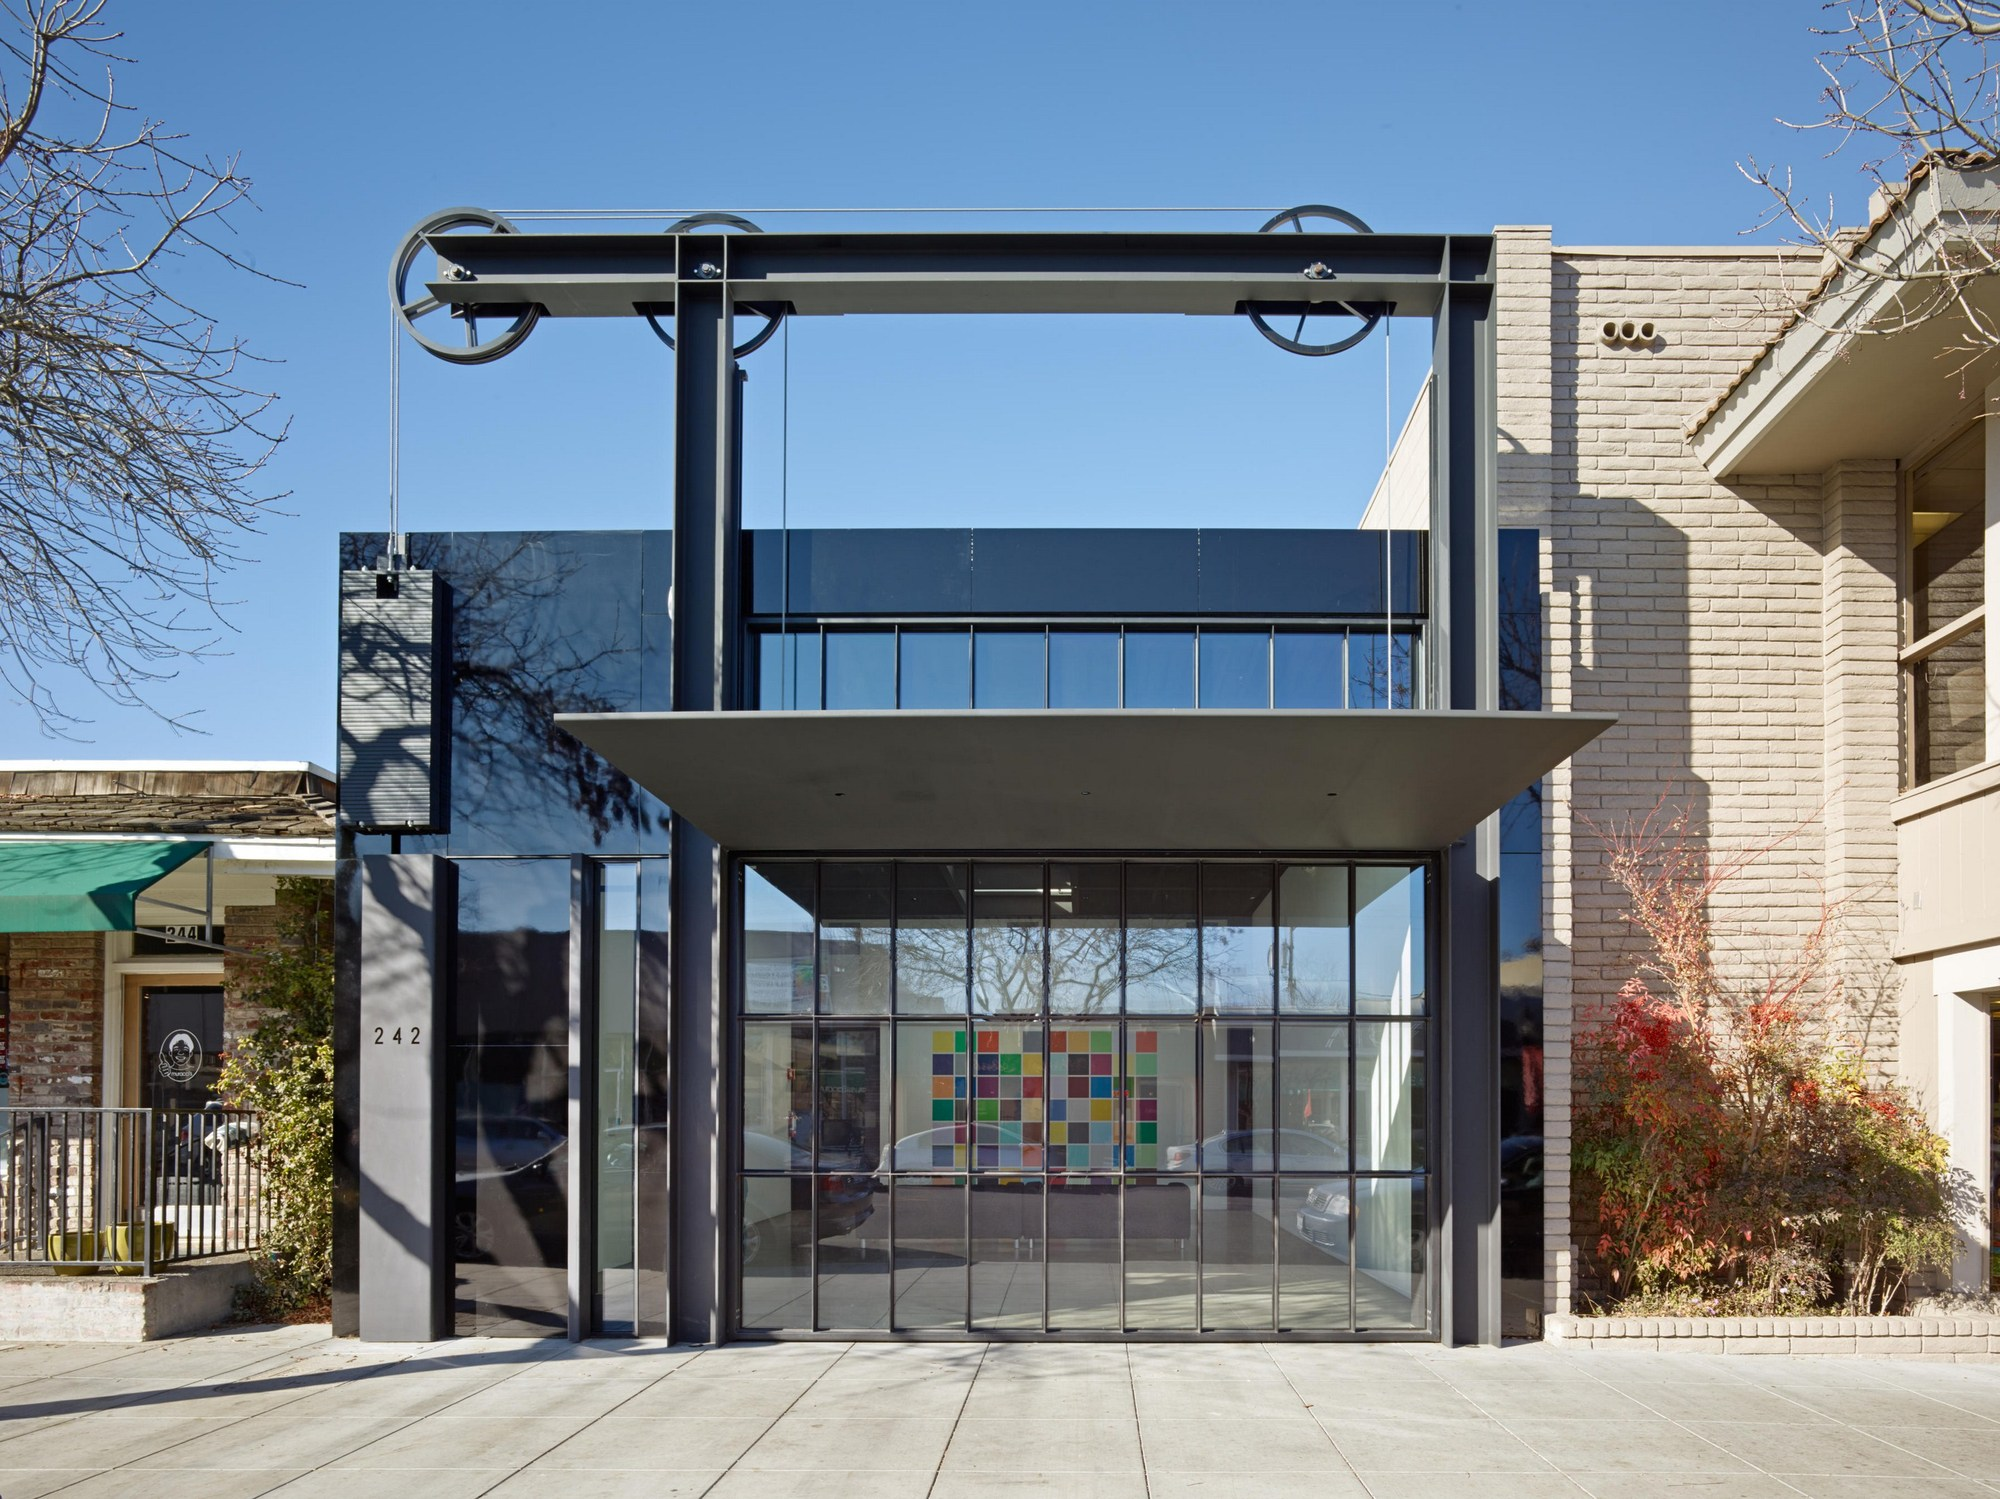 242 State Street Olson Kundig Archdaily